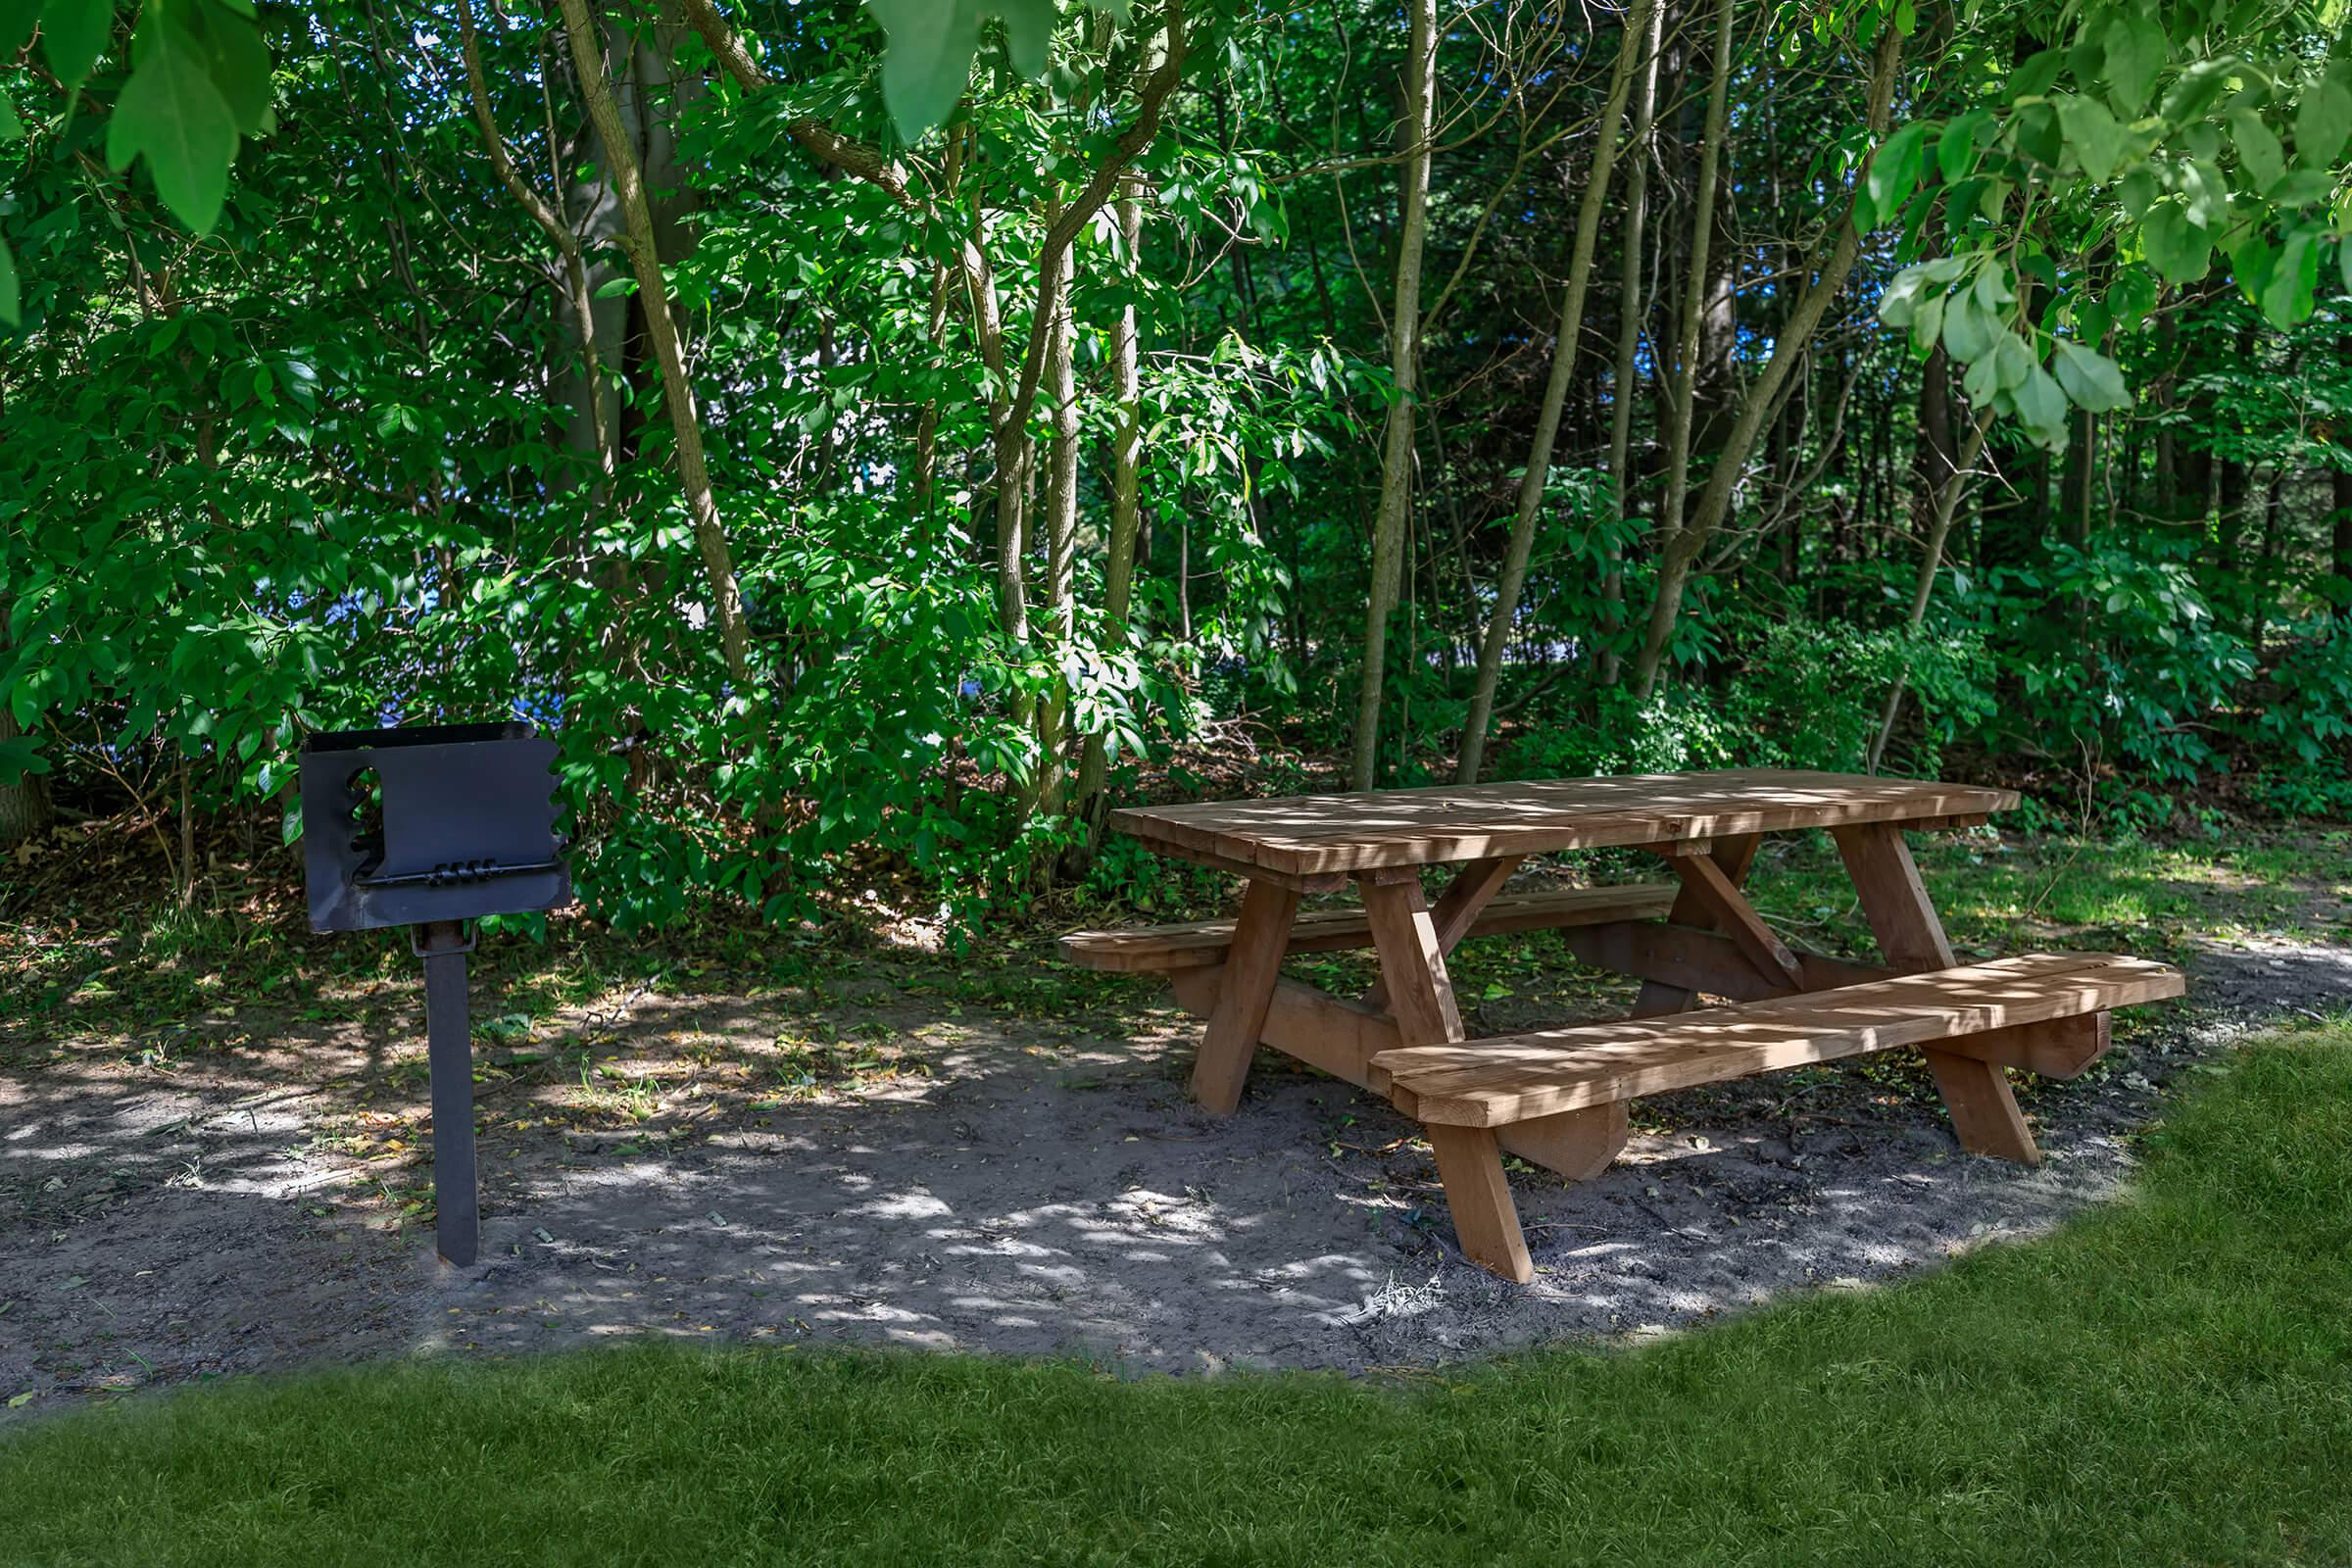 a wooden bench in a park